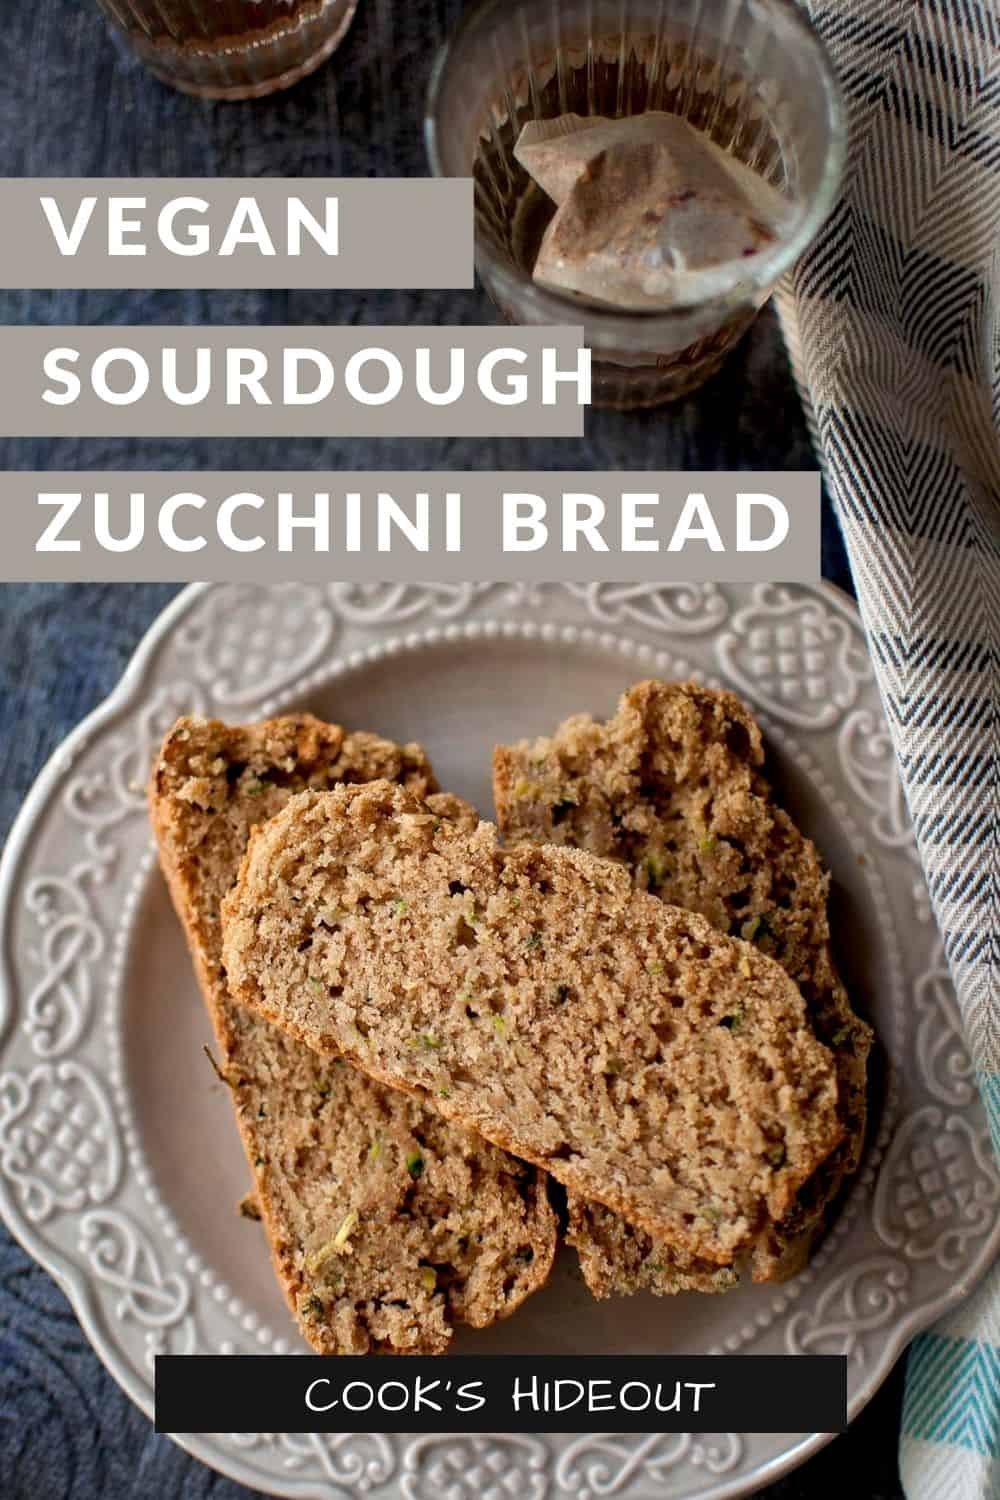 Grey plate with slices of sourdough zucchini bread